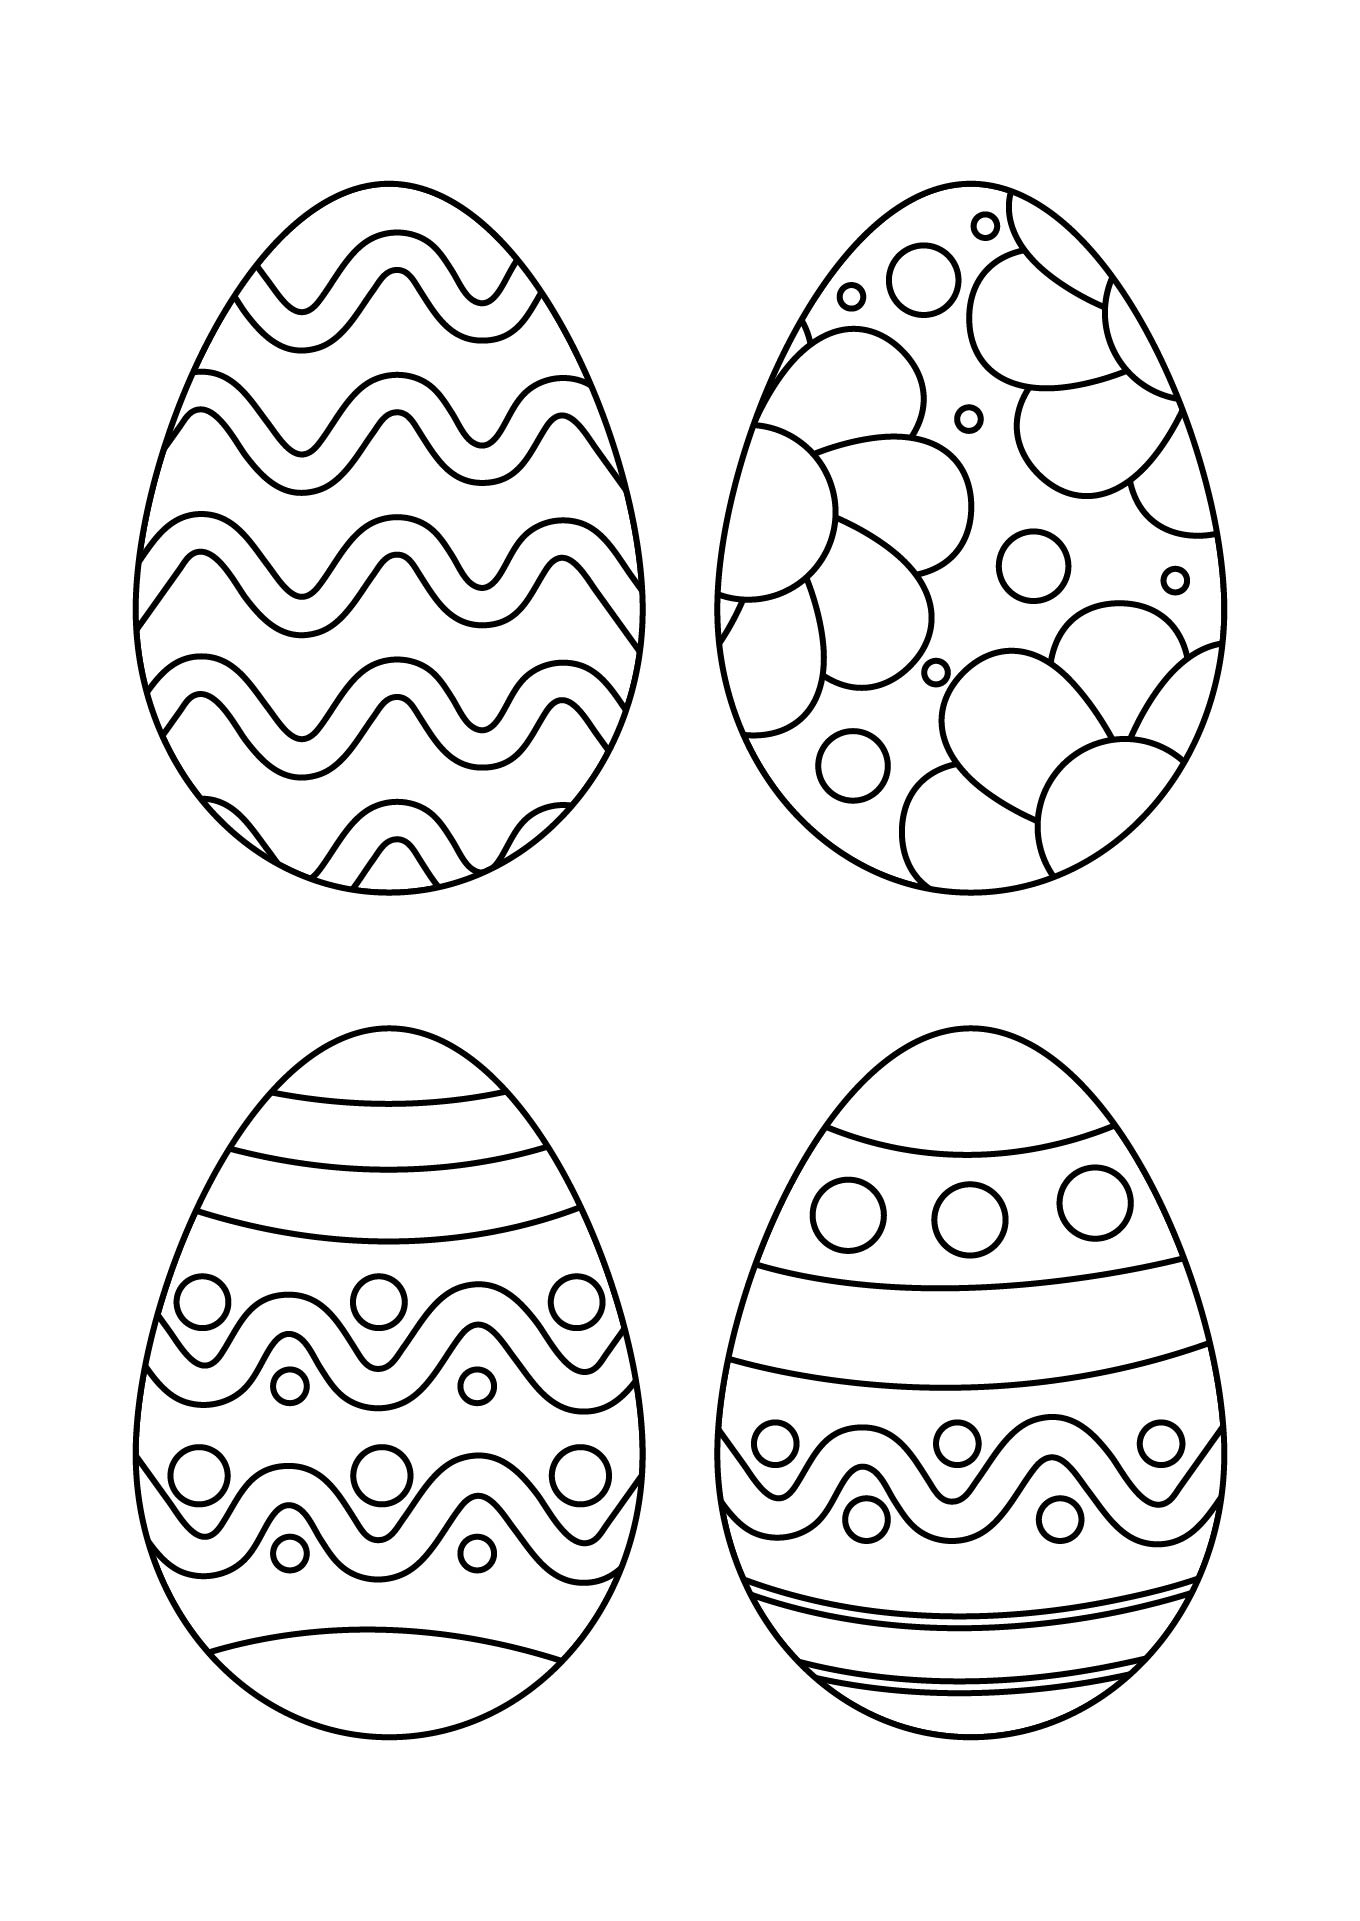 Printable Easter Egg Pattern Template